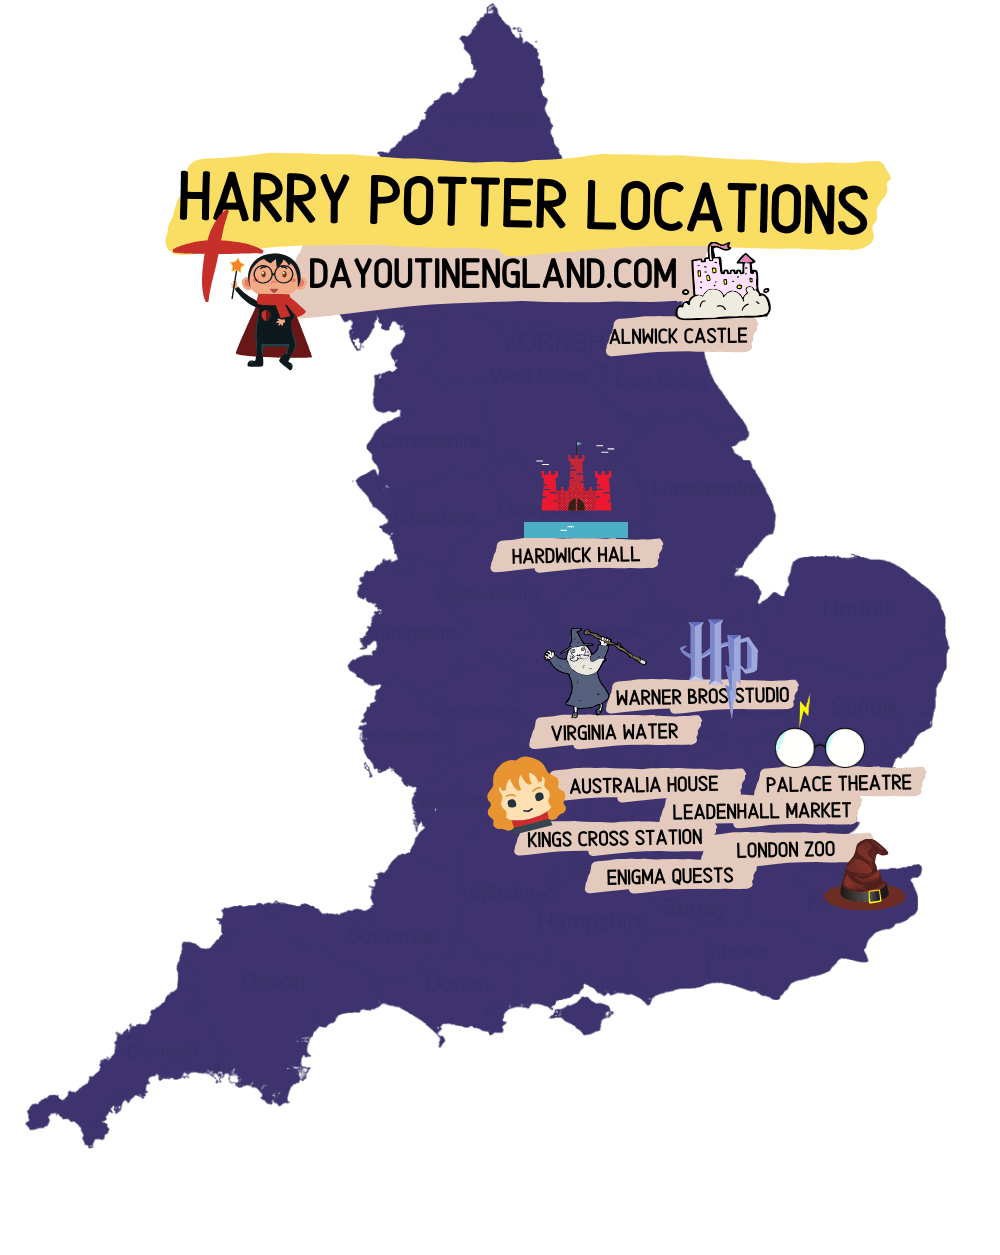 Harry Potter Locations England